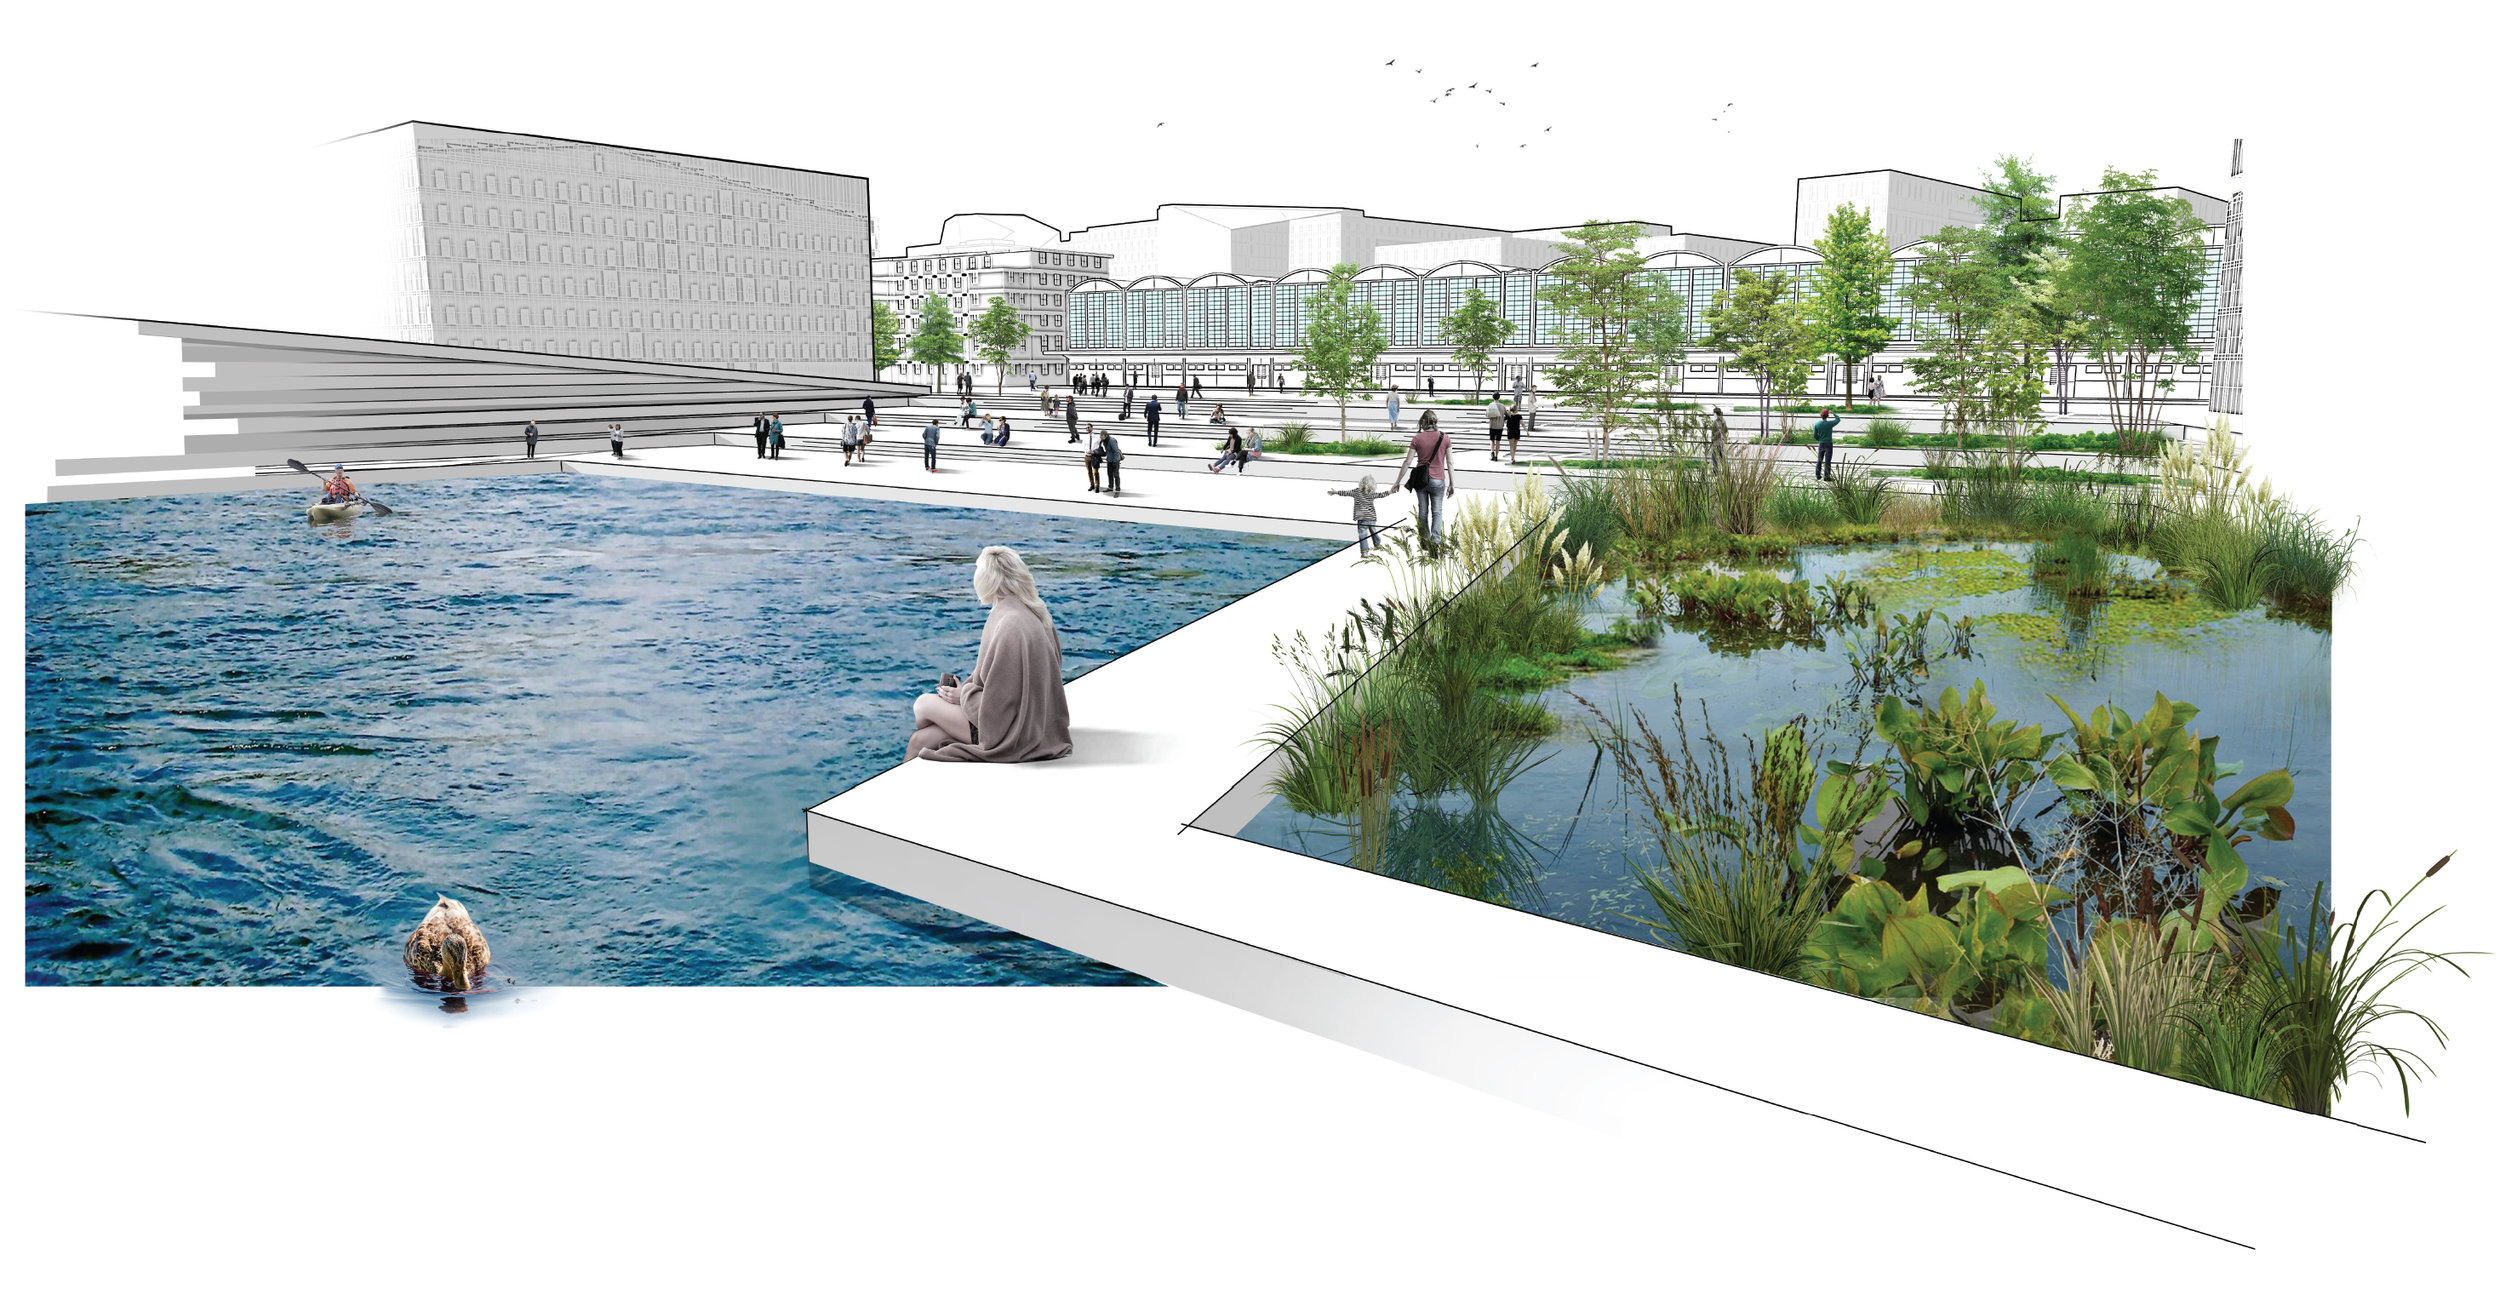 The plan aims to create both a public urban waterfront as well as a naturalised shoreline and wetlands.